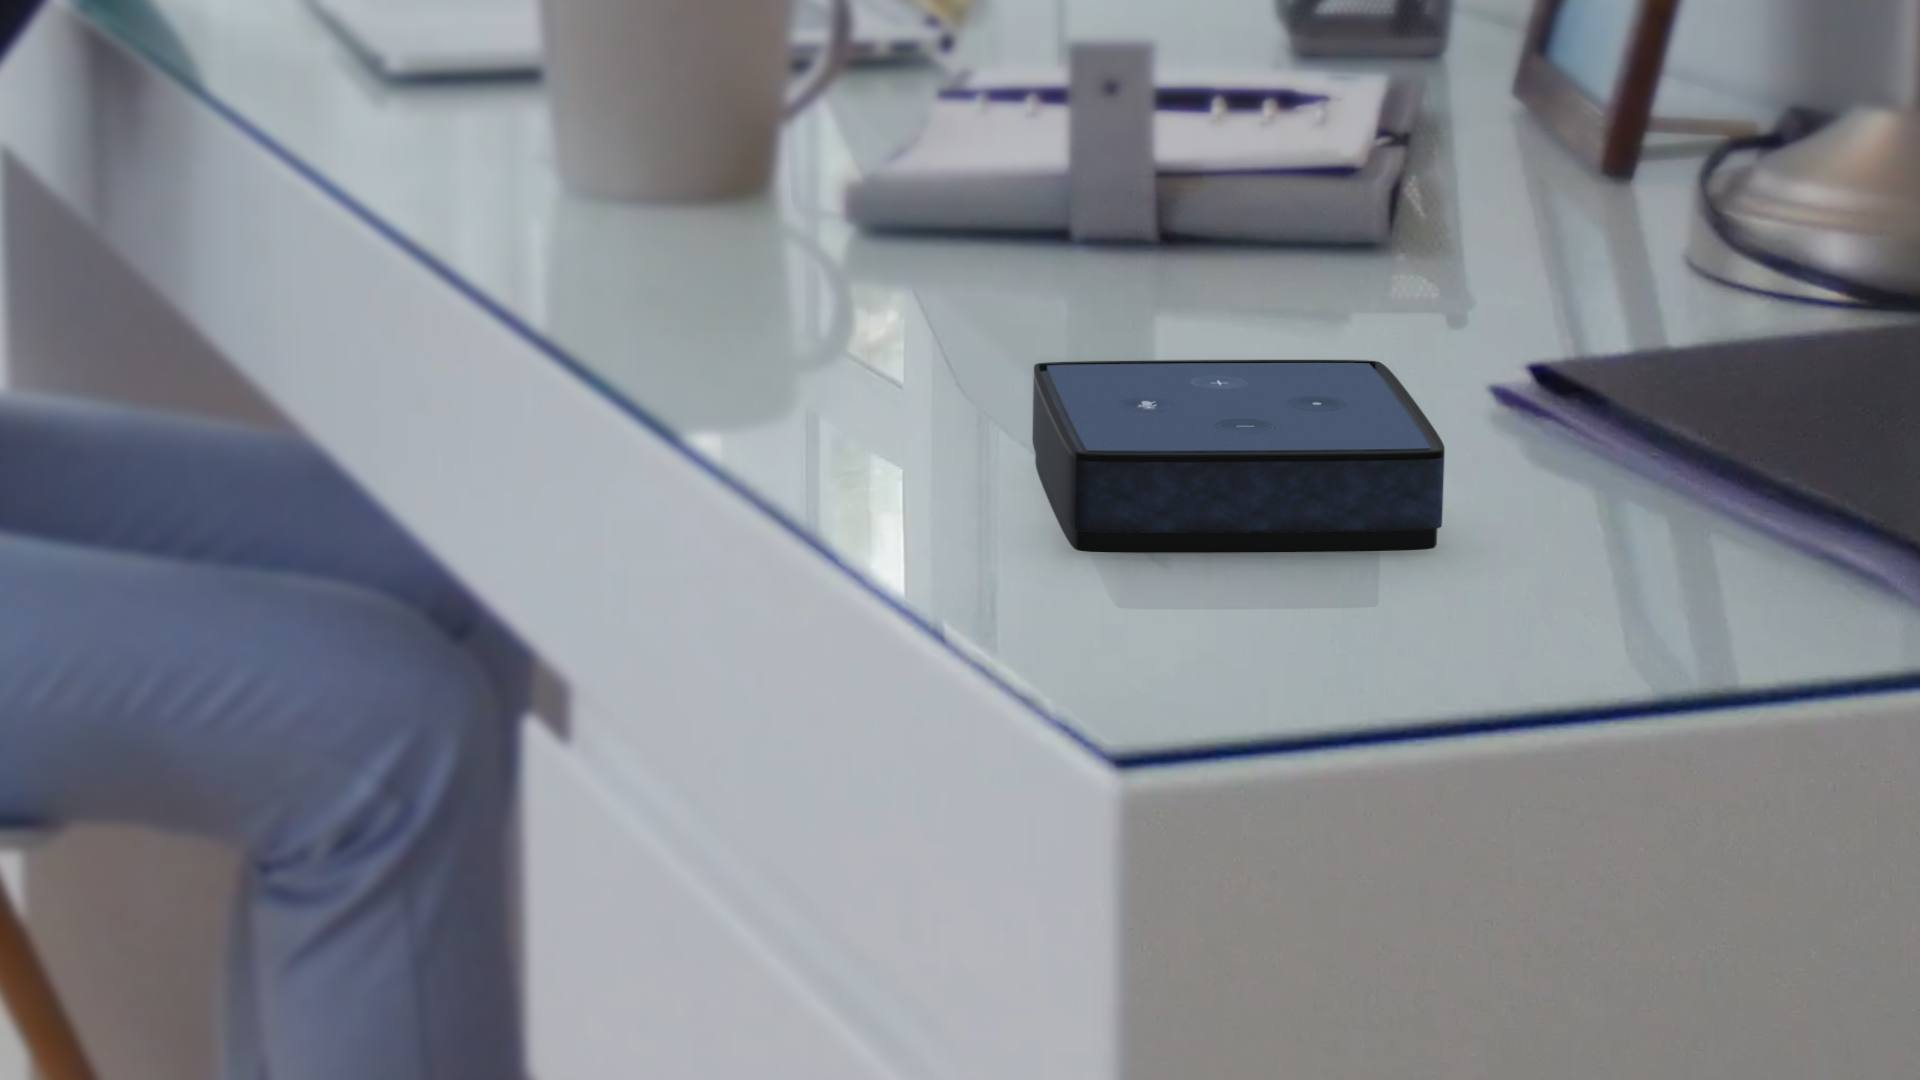 MediaTek sees much promise in the field of voice assistant devices. (Photo courtesy of MediaTek)